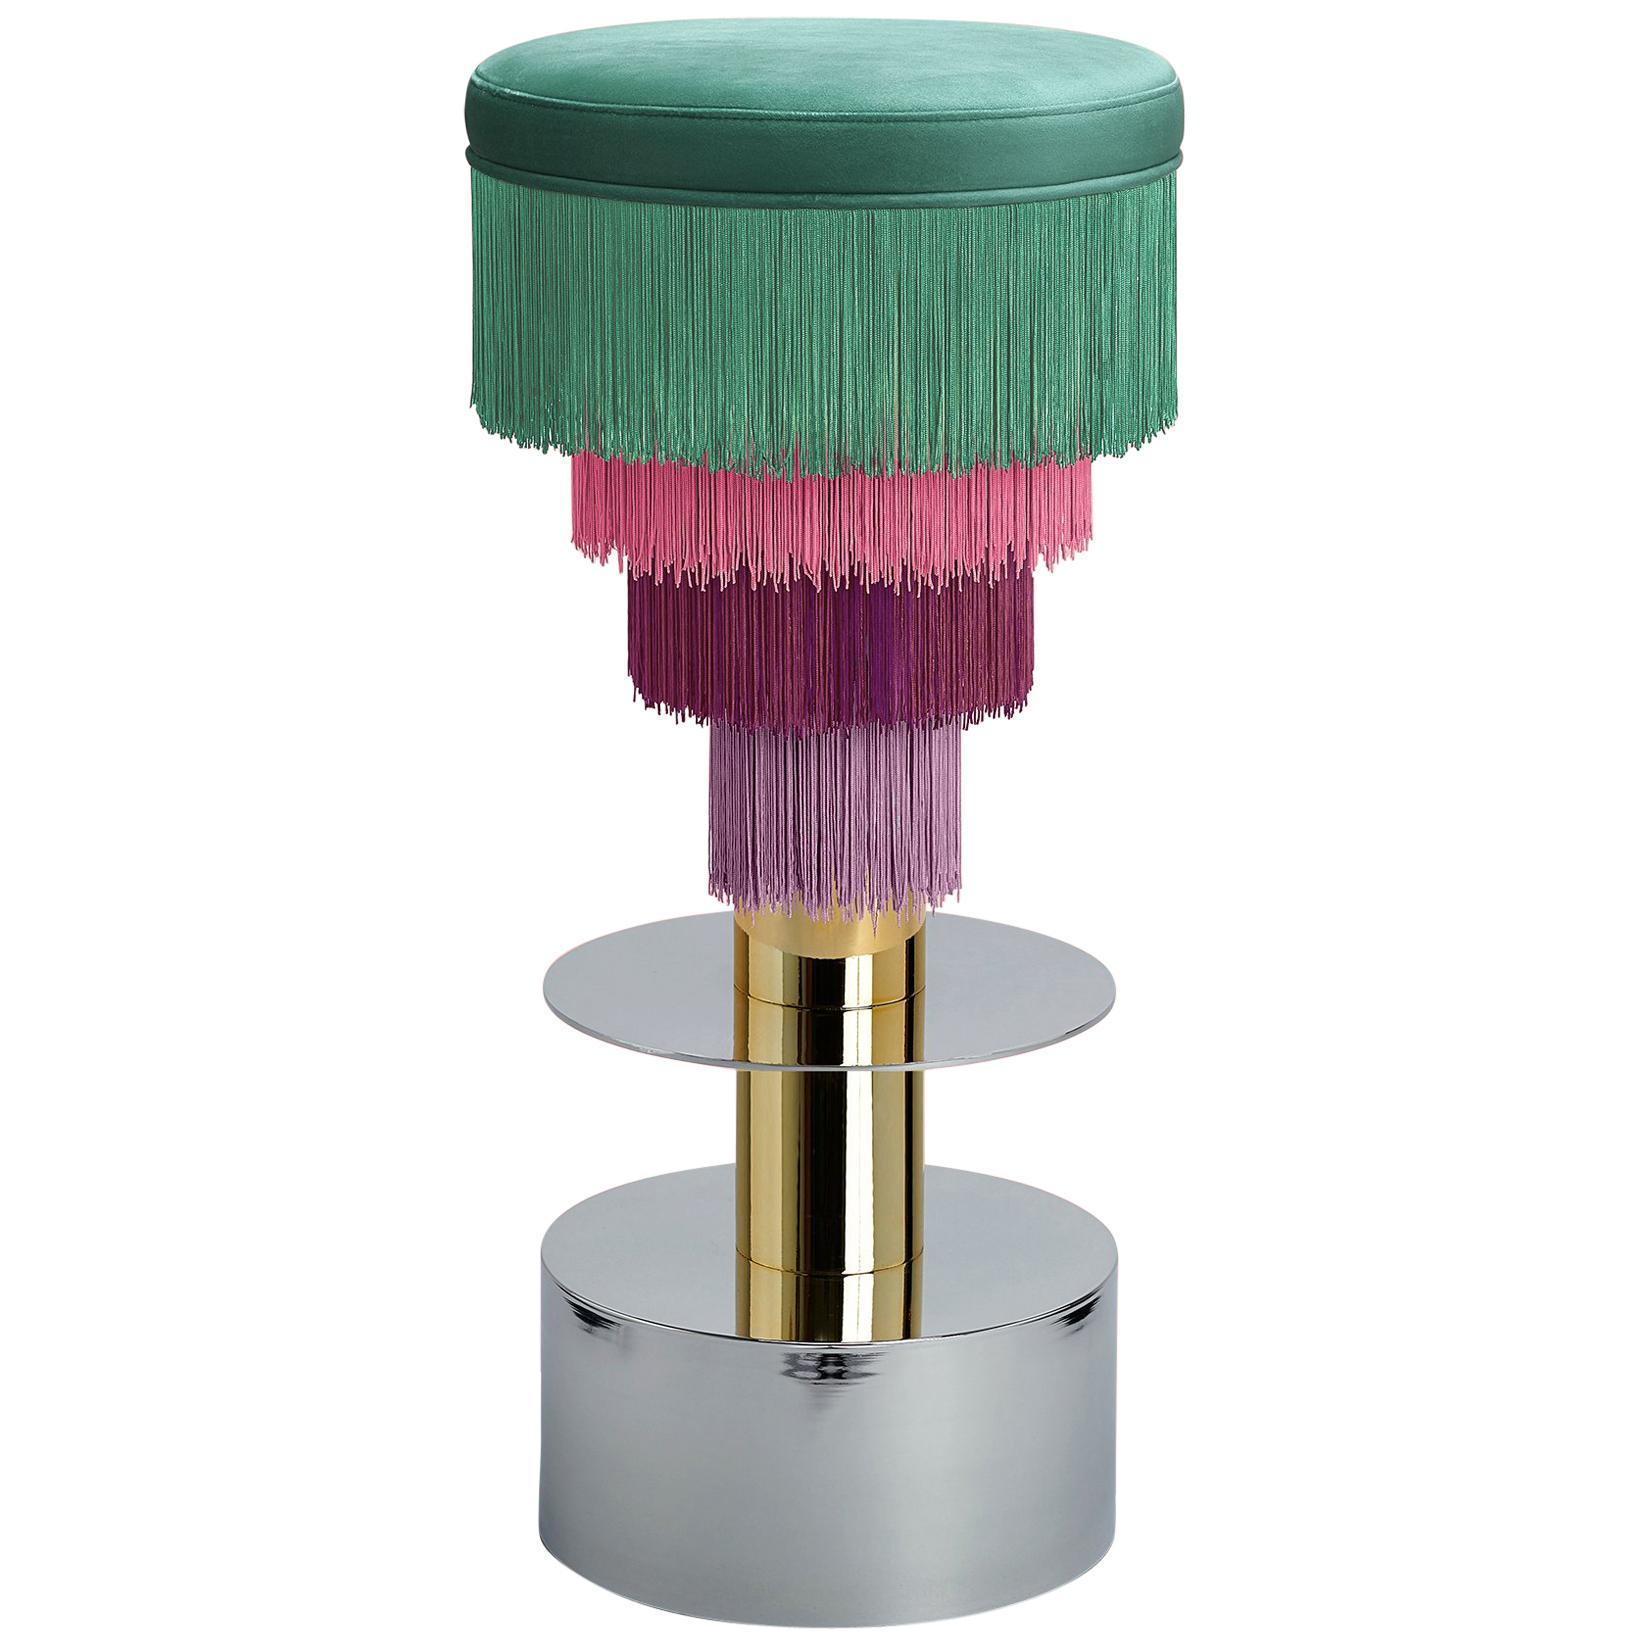 Deja Vu Green and Pink Stool with 24-Karat Gold-Plated Metal and Velvet Fringes